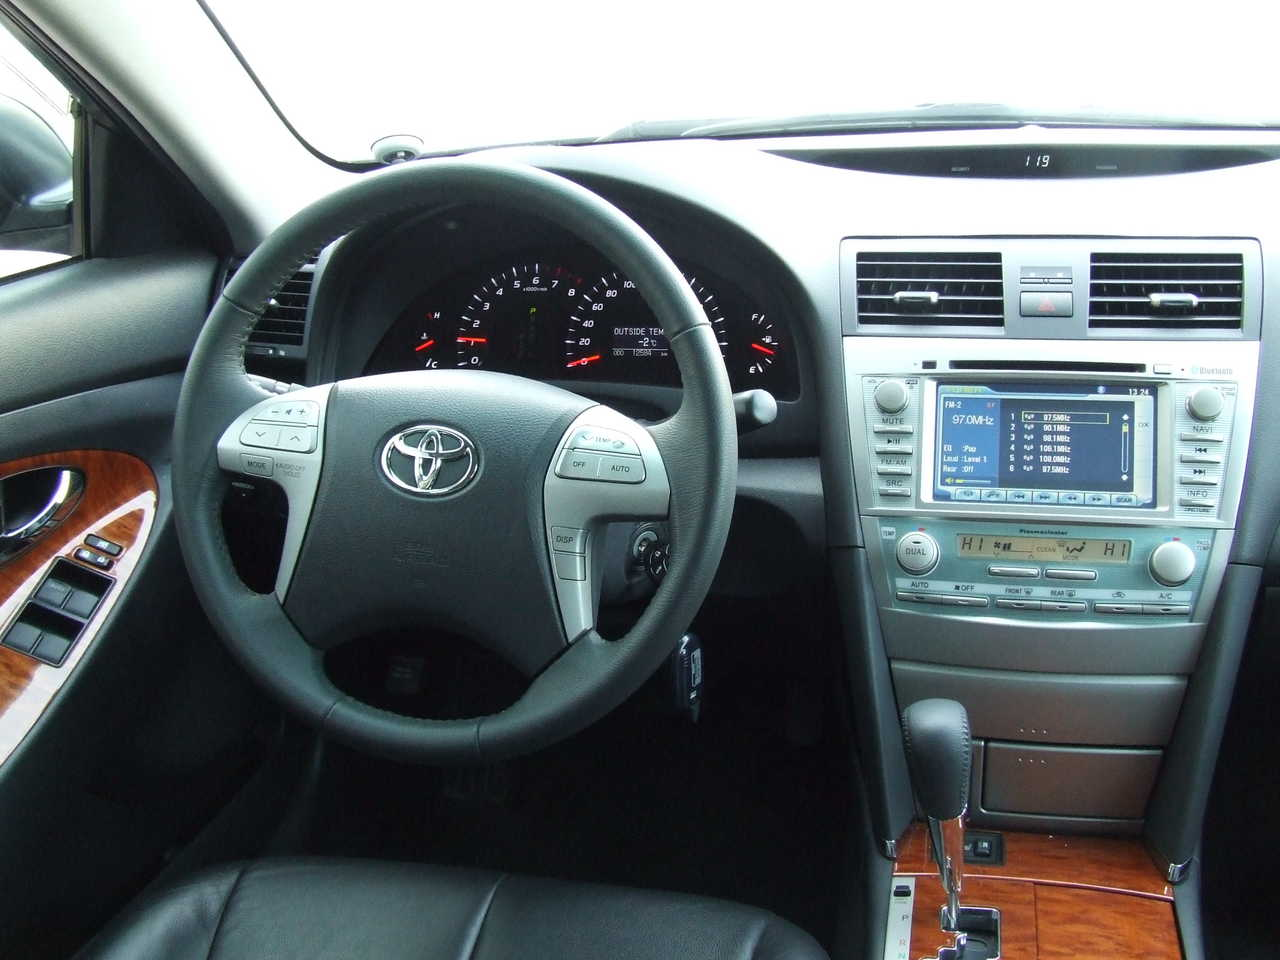 2008 toyota camry pictures gasoline ff automatic for sale. Black Bedroom Furniture Sets. Home Design Ideas